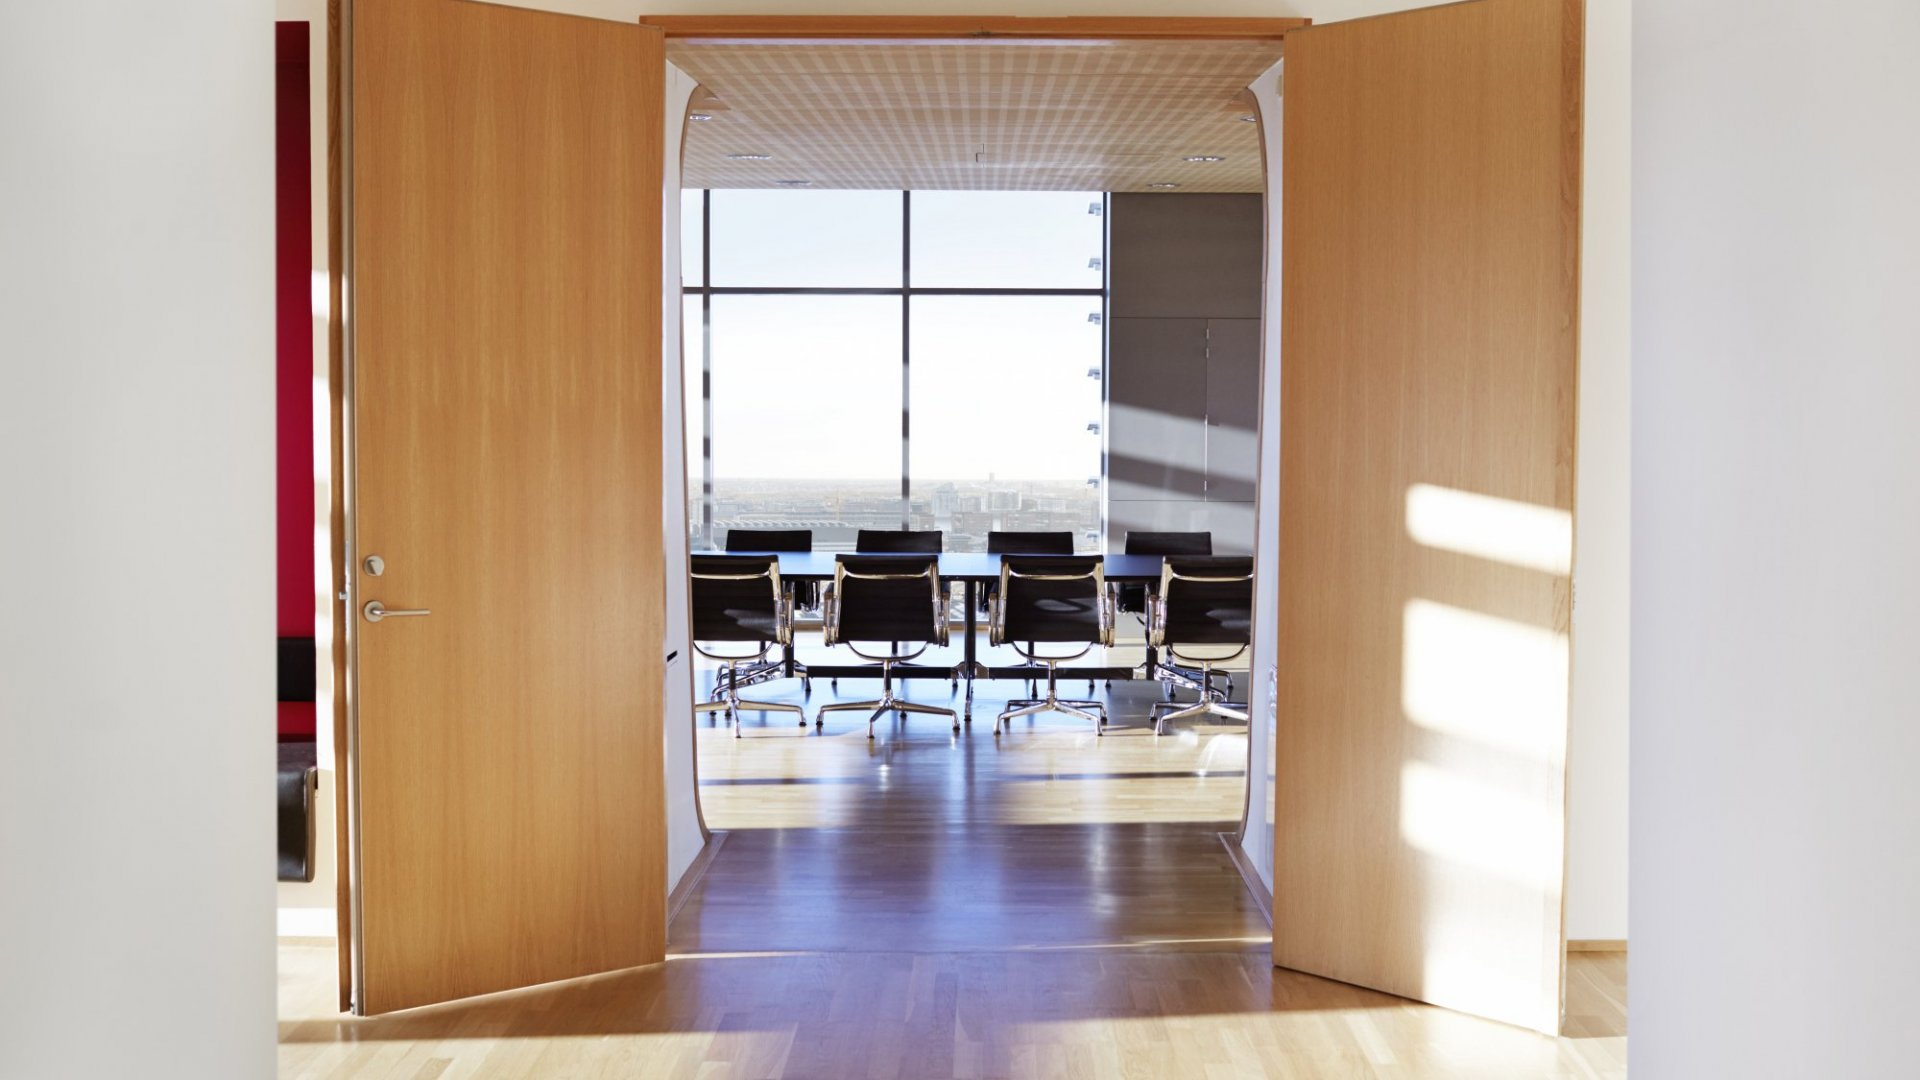 Want an Effective Office Layout With a Great Worker Experience? Choose This